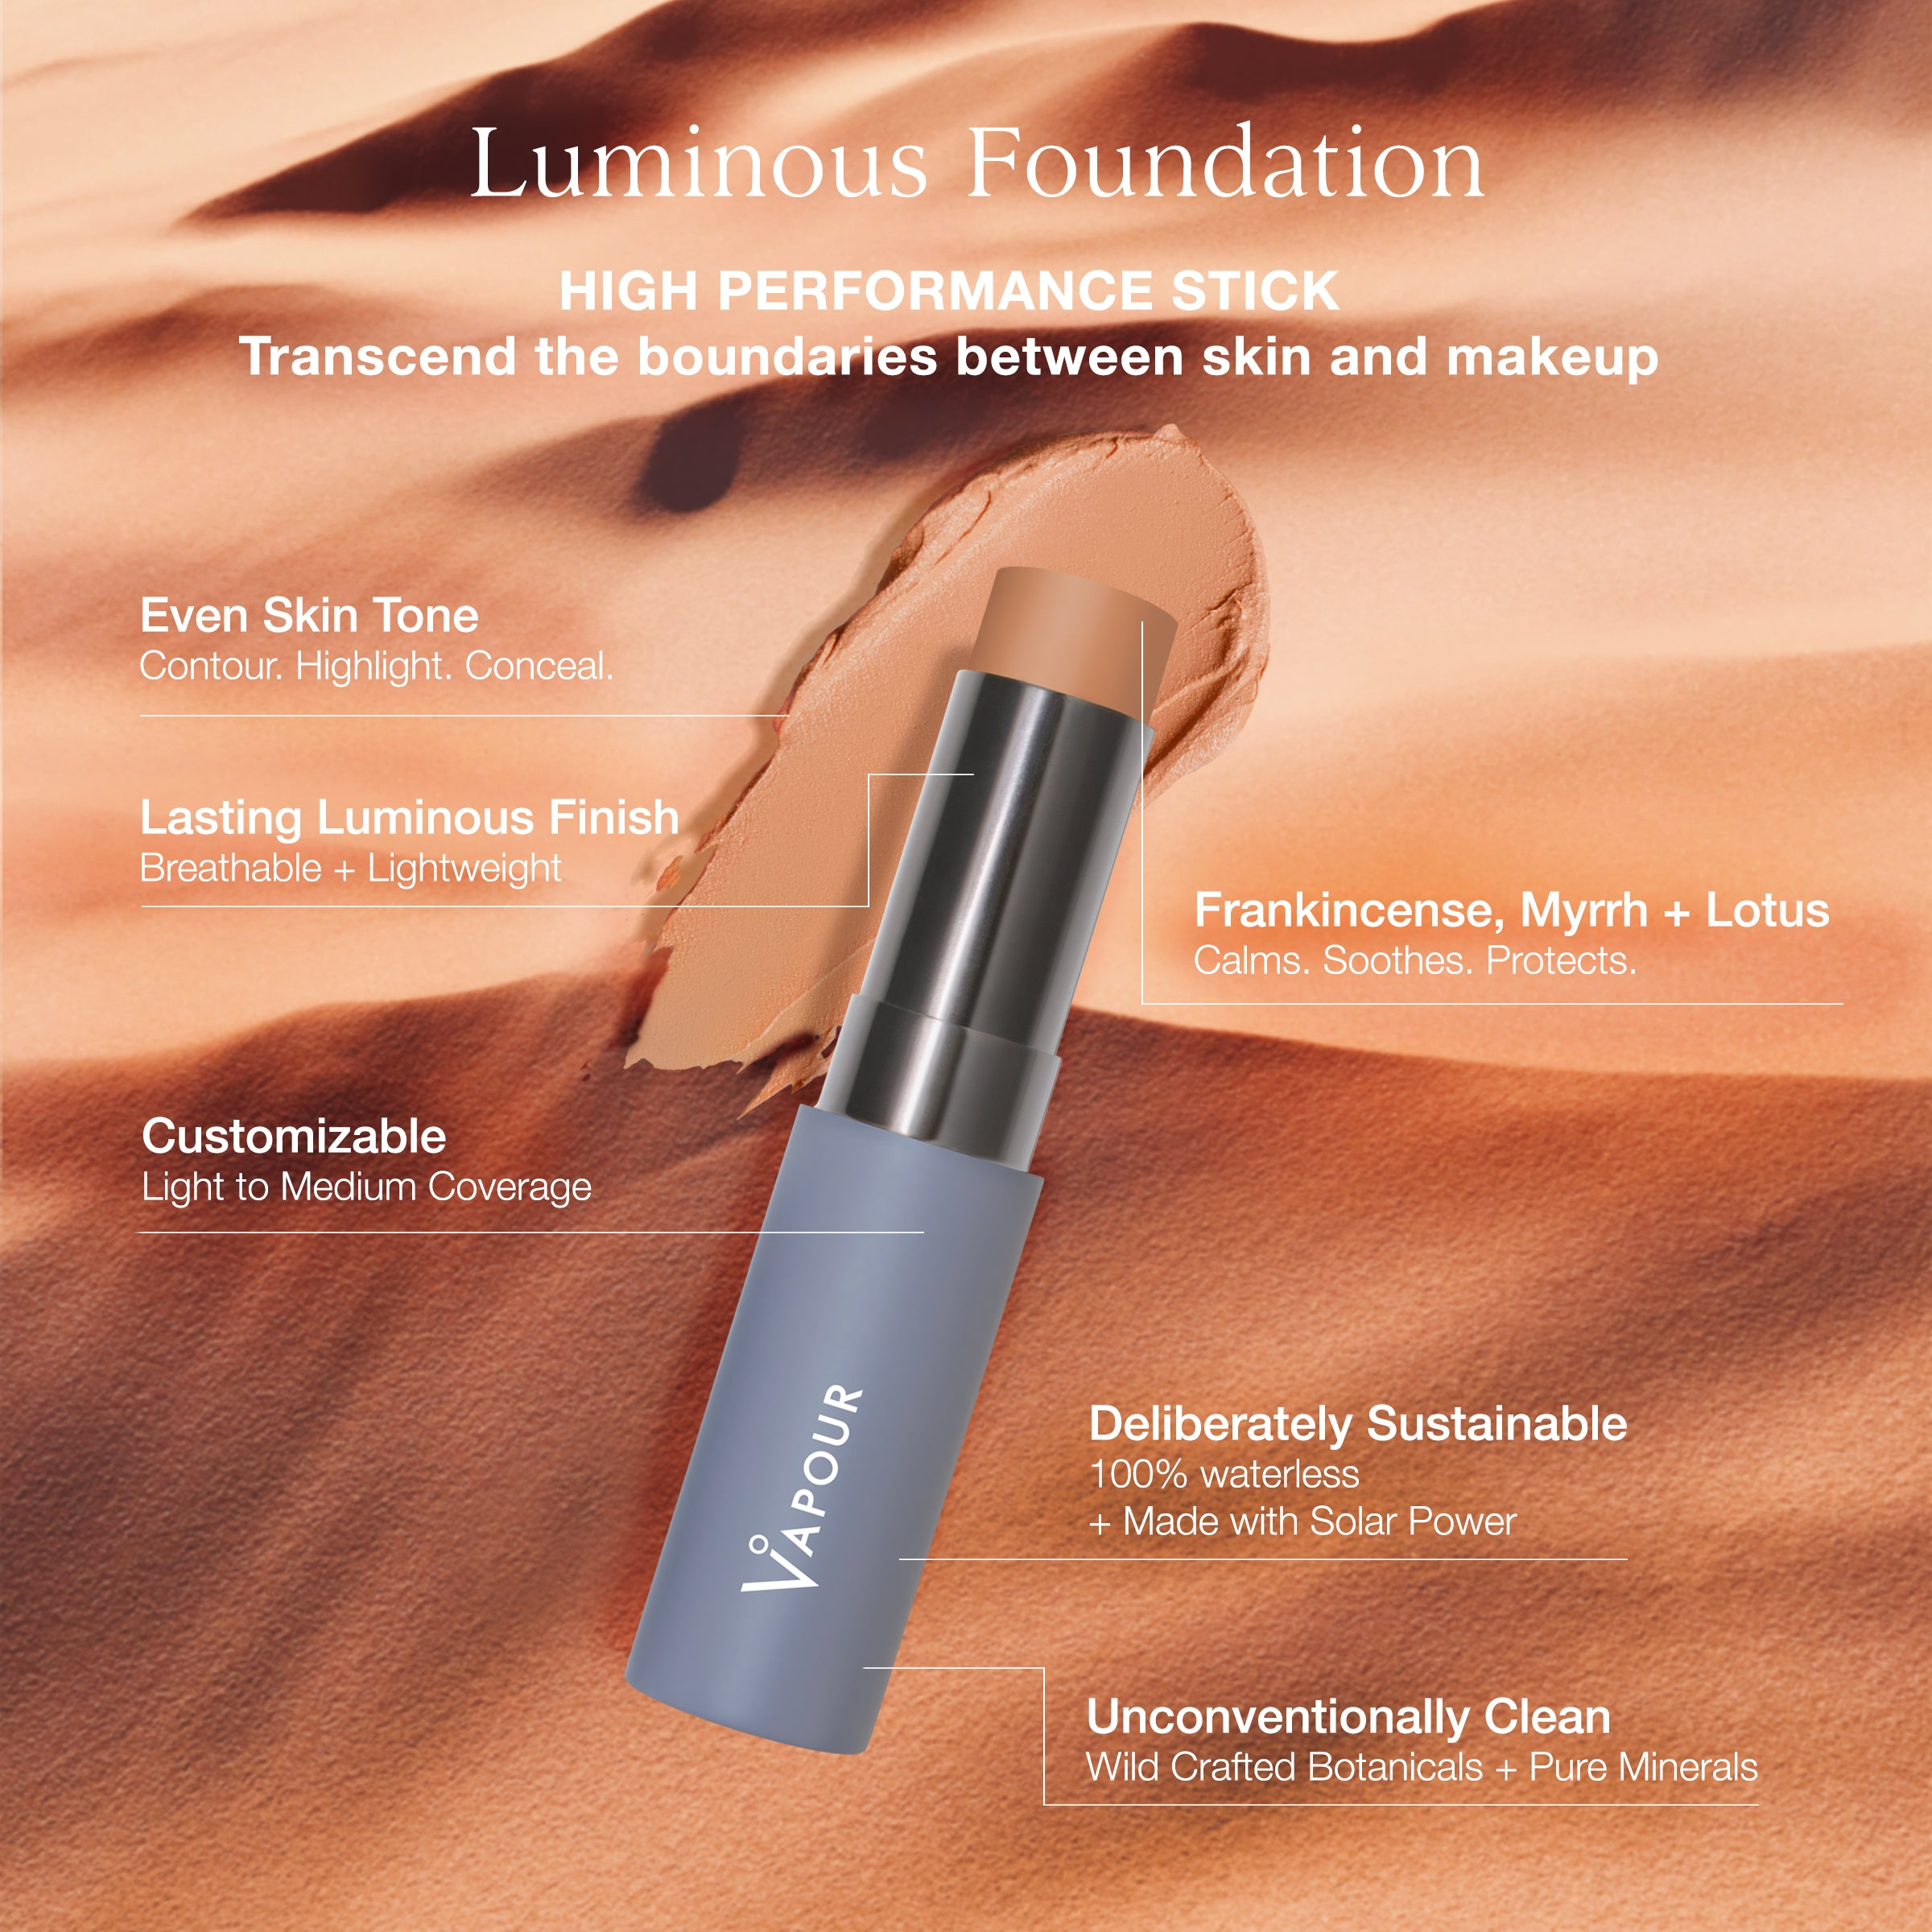 Luminous Foundation Infographics